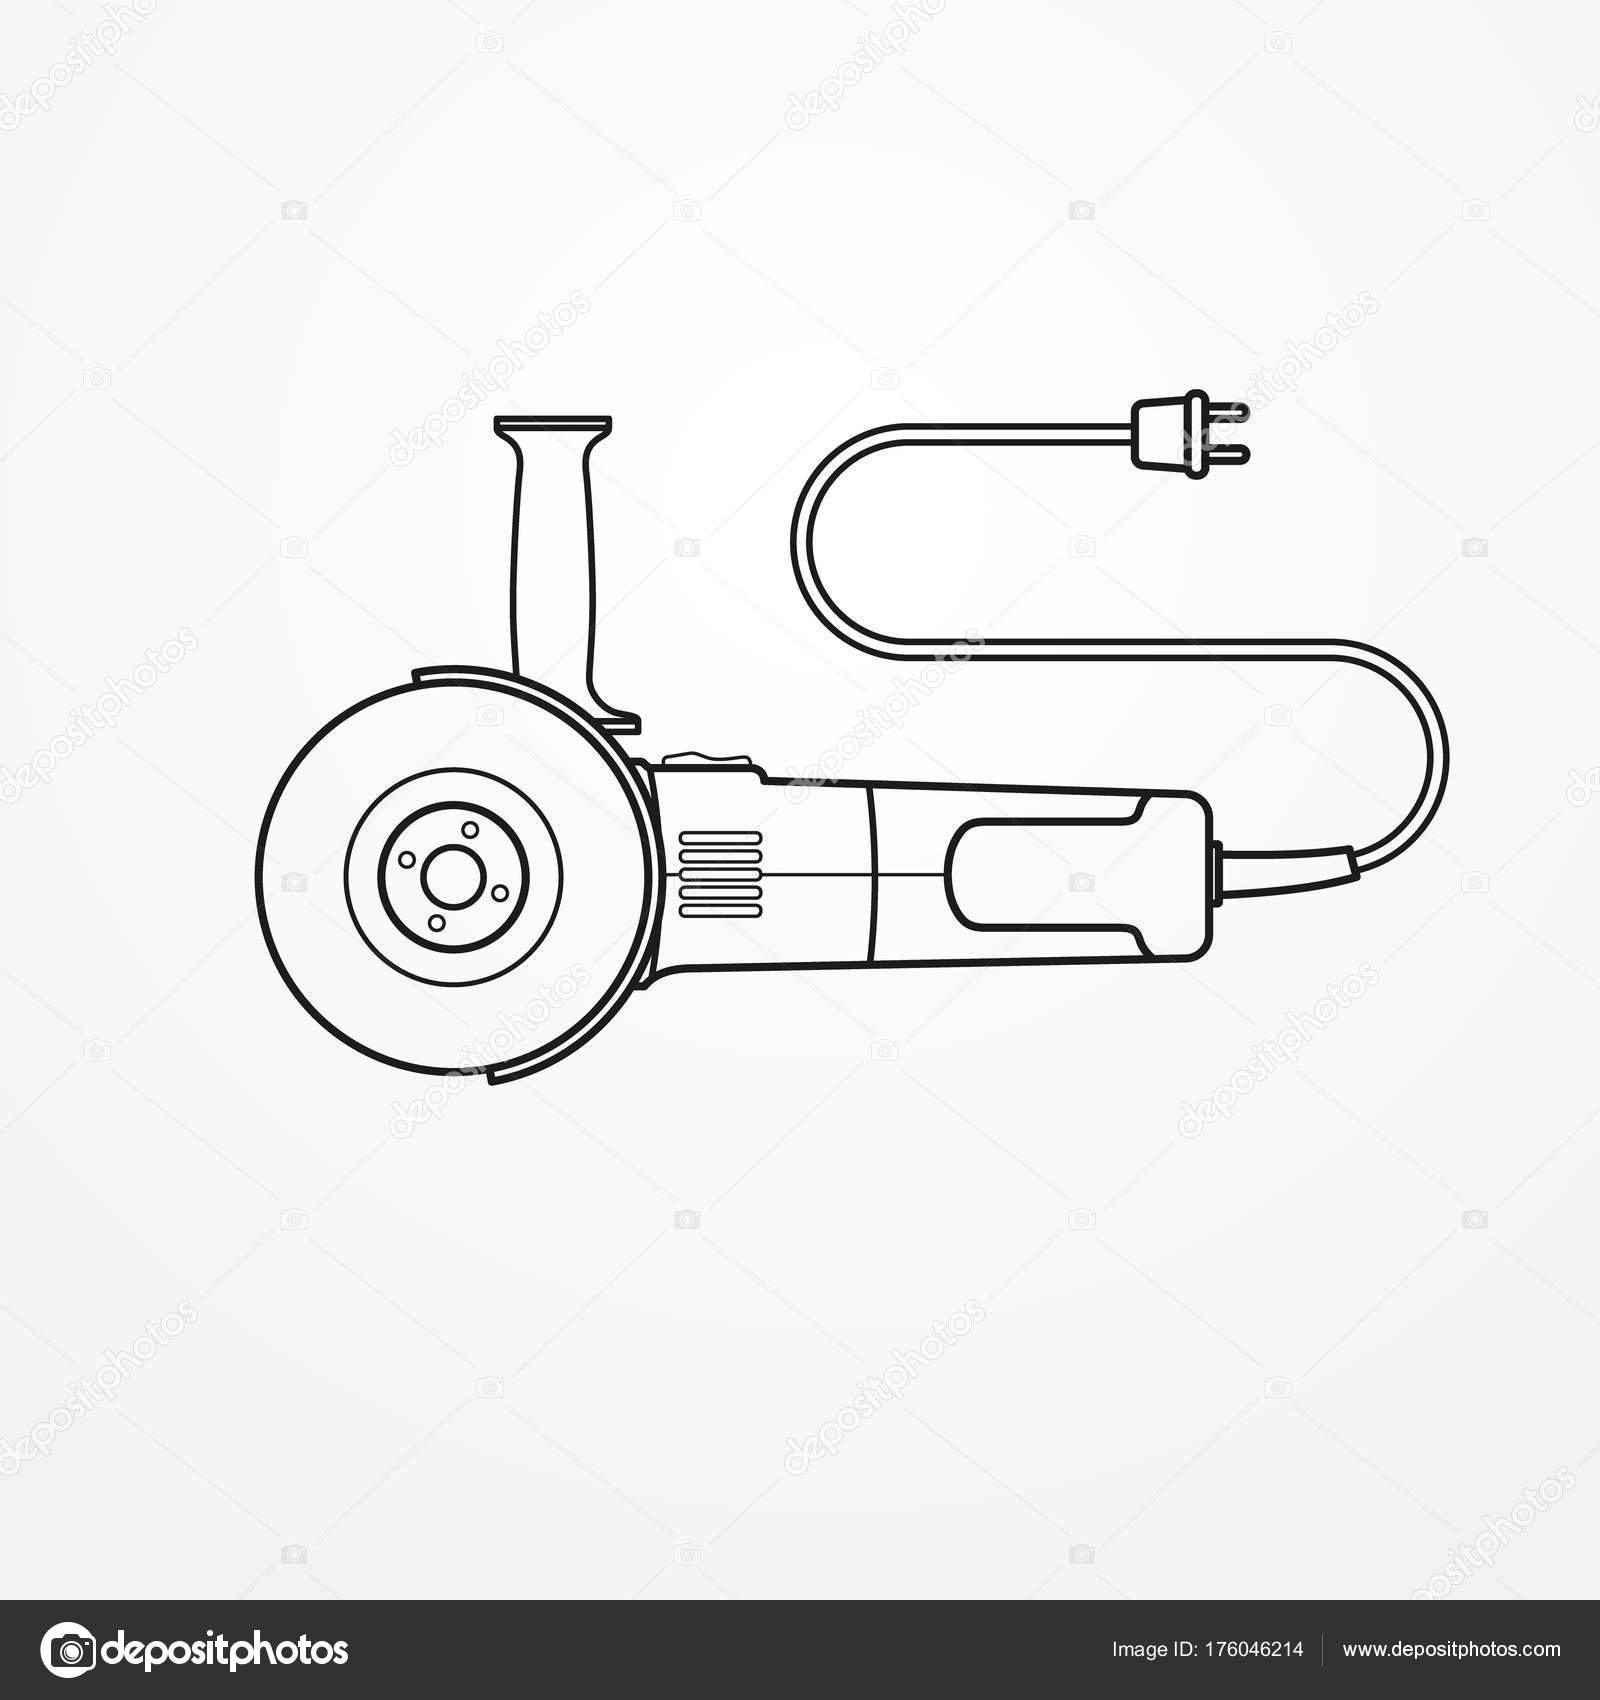 Electric Angle Grinder Vector Image